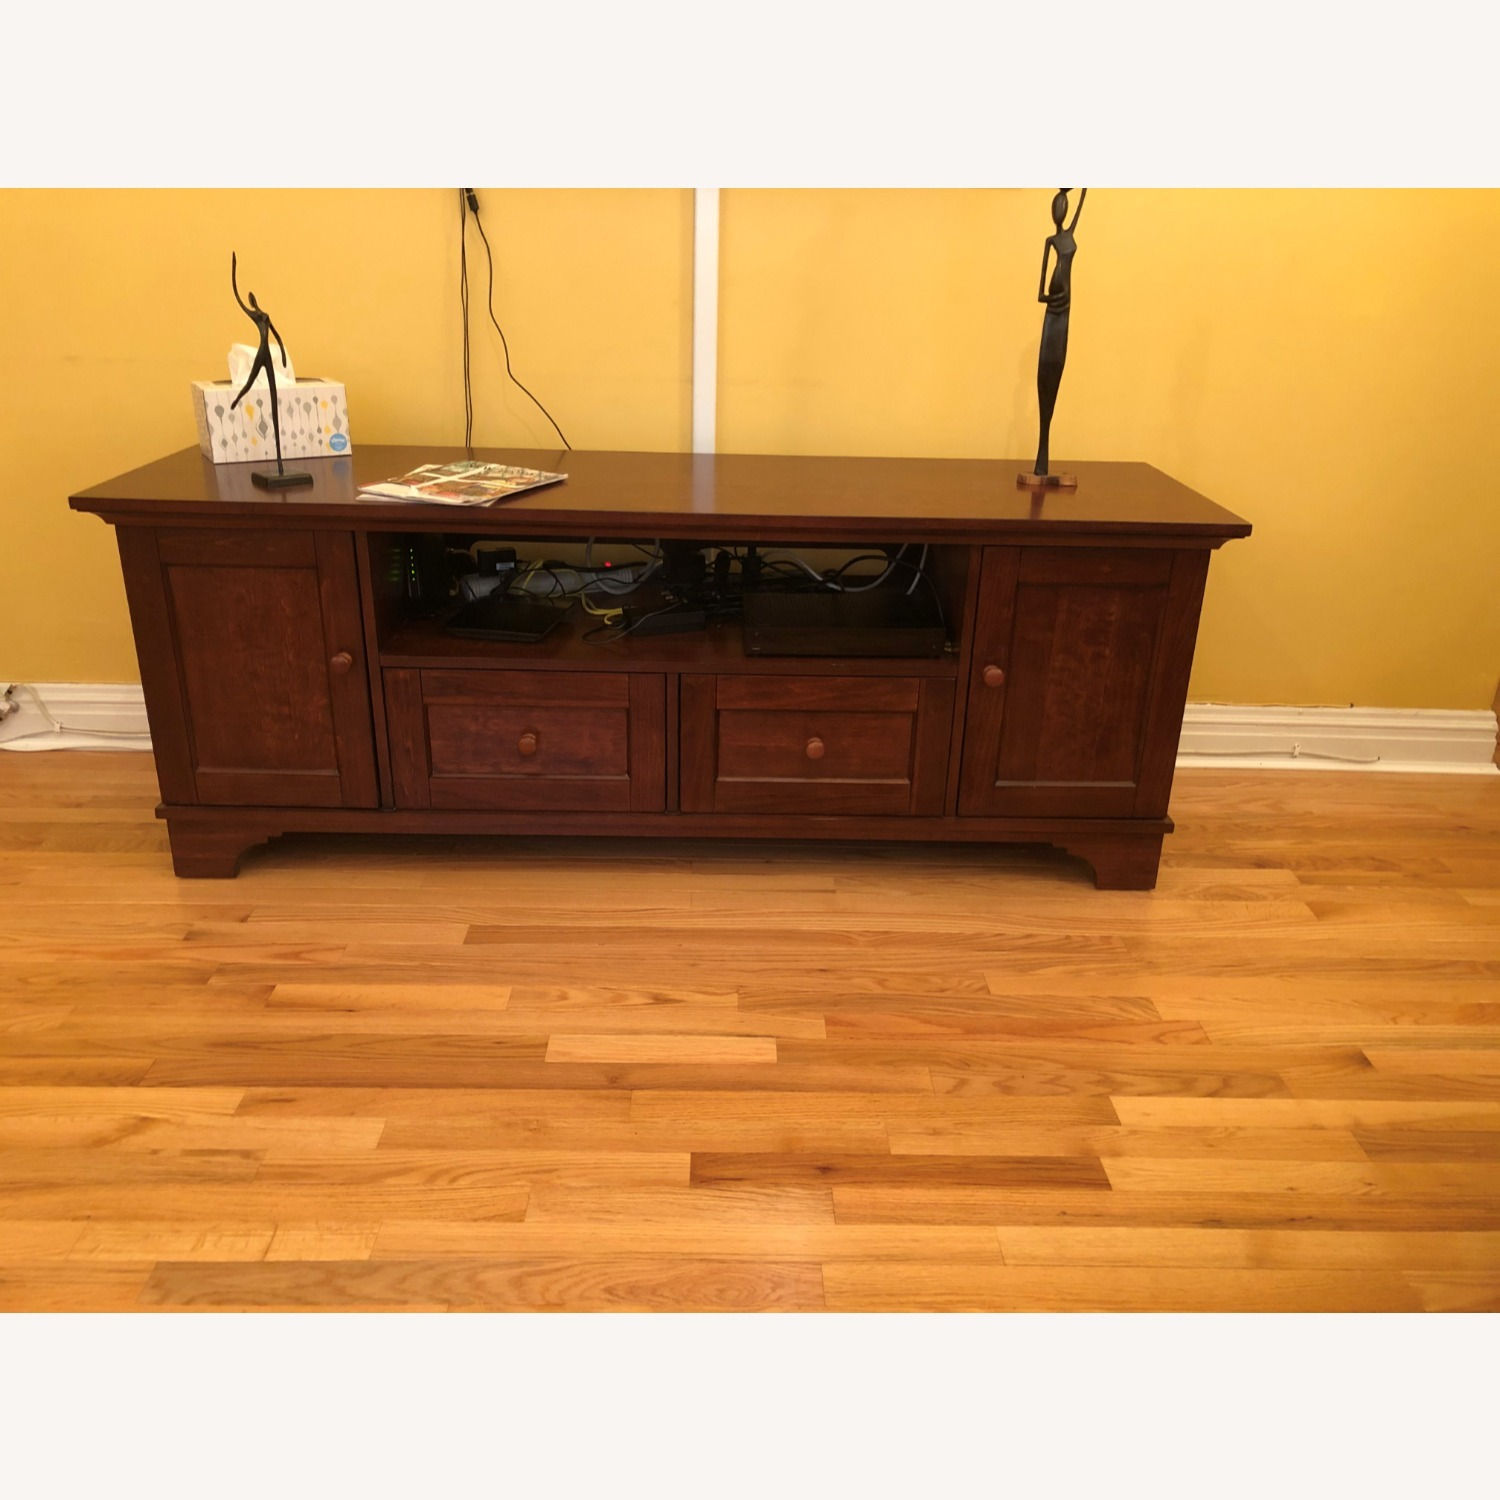 Pottery Barn Entertainment Console - image-1